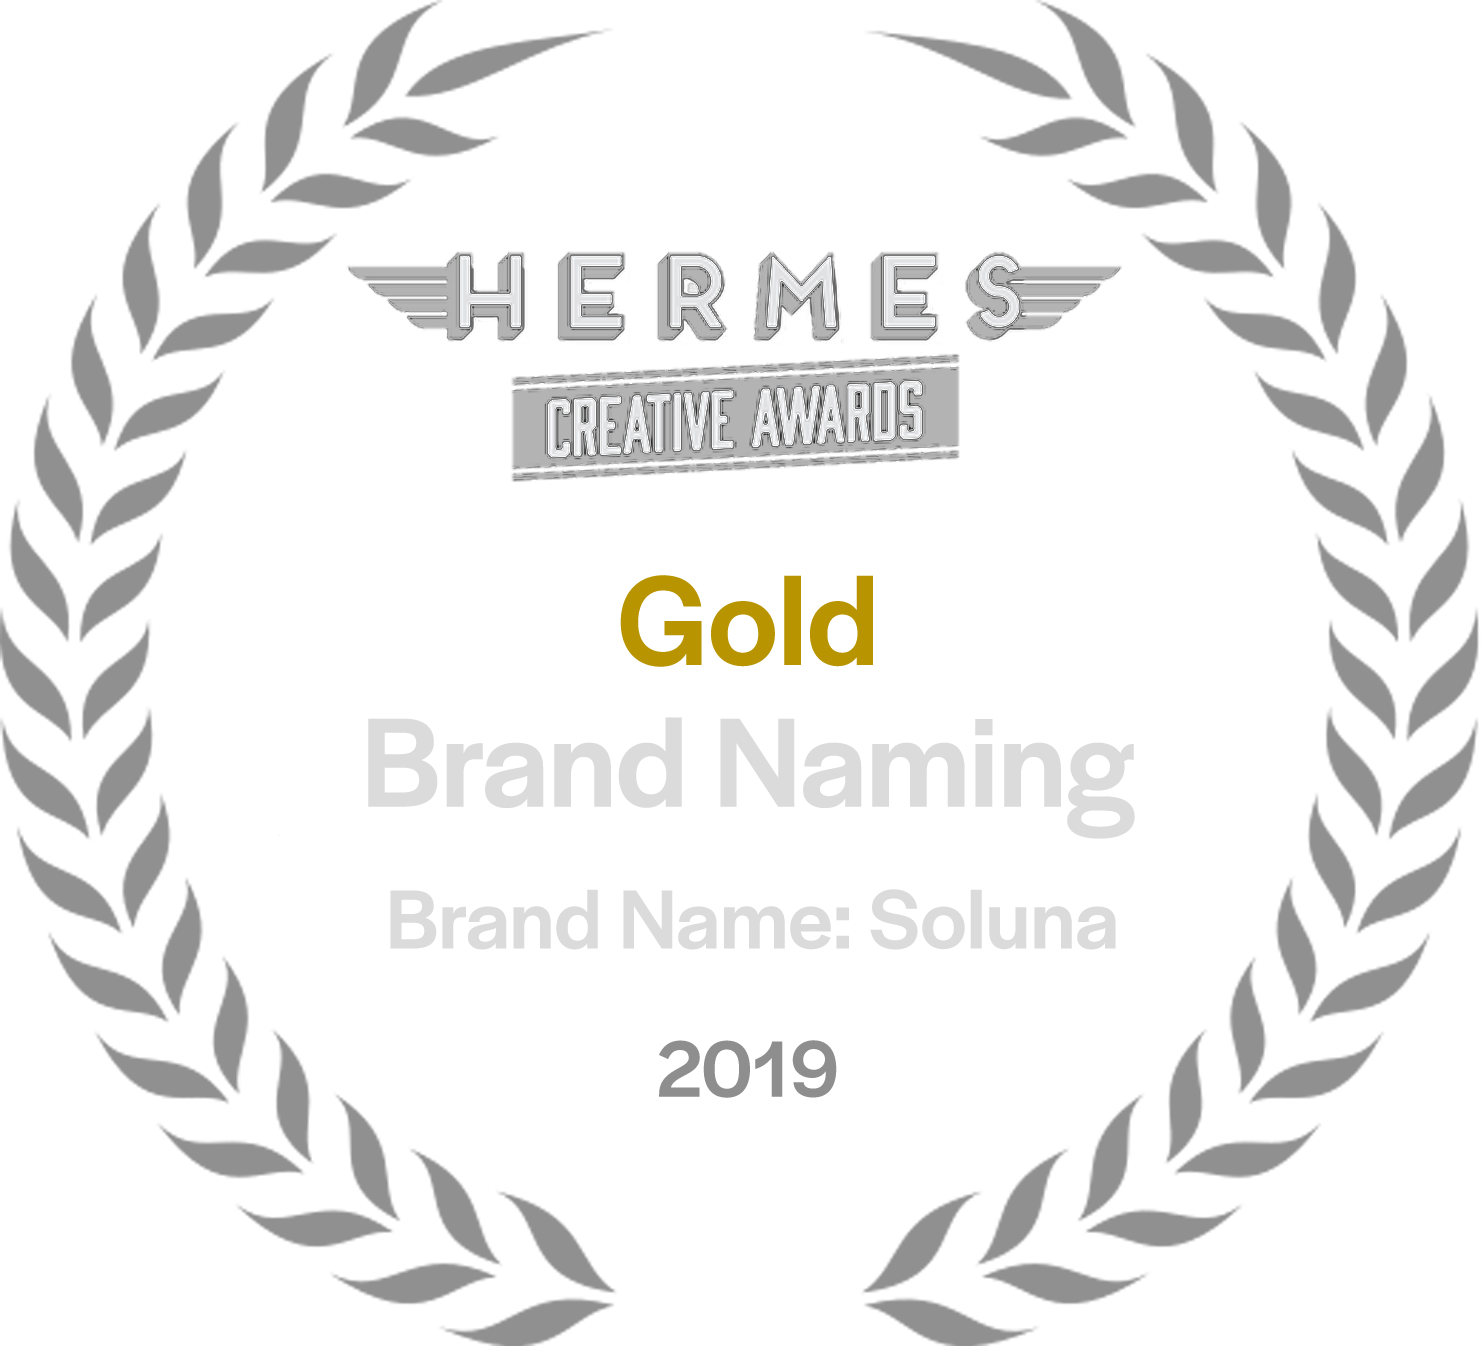 Hermes Creative Awards Gold Award Winner in Naming